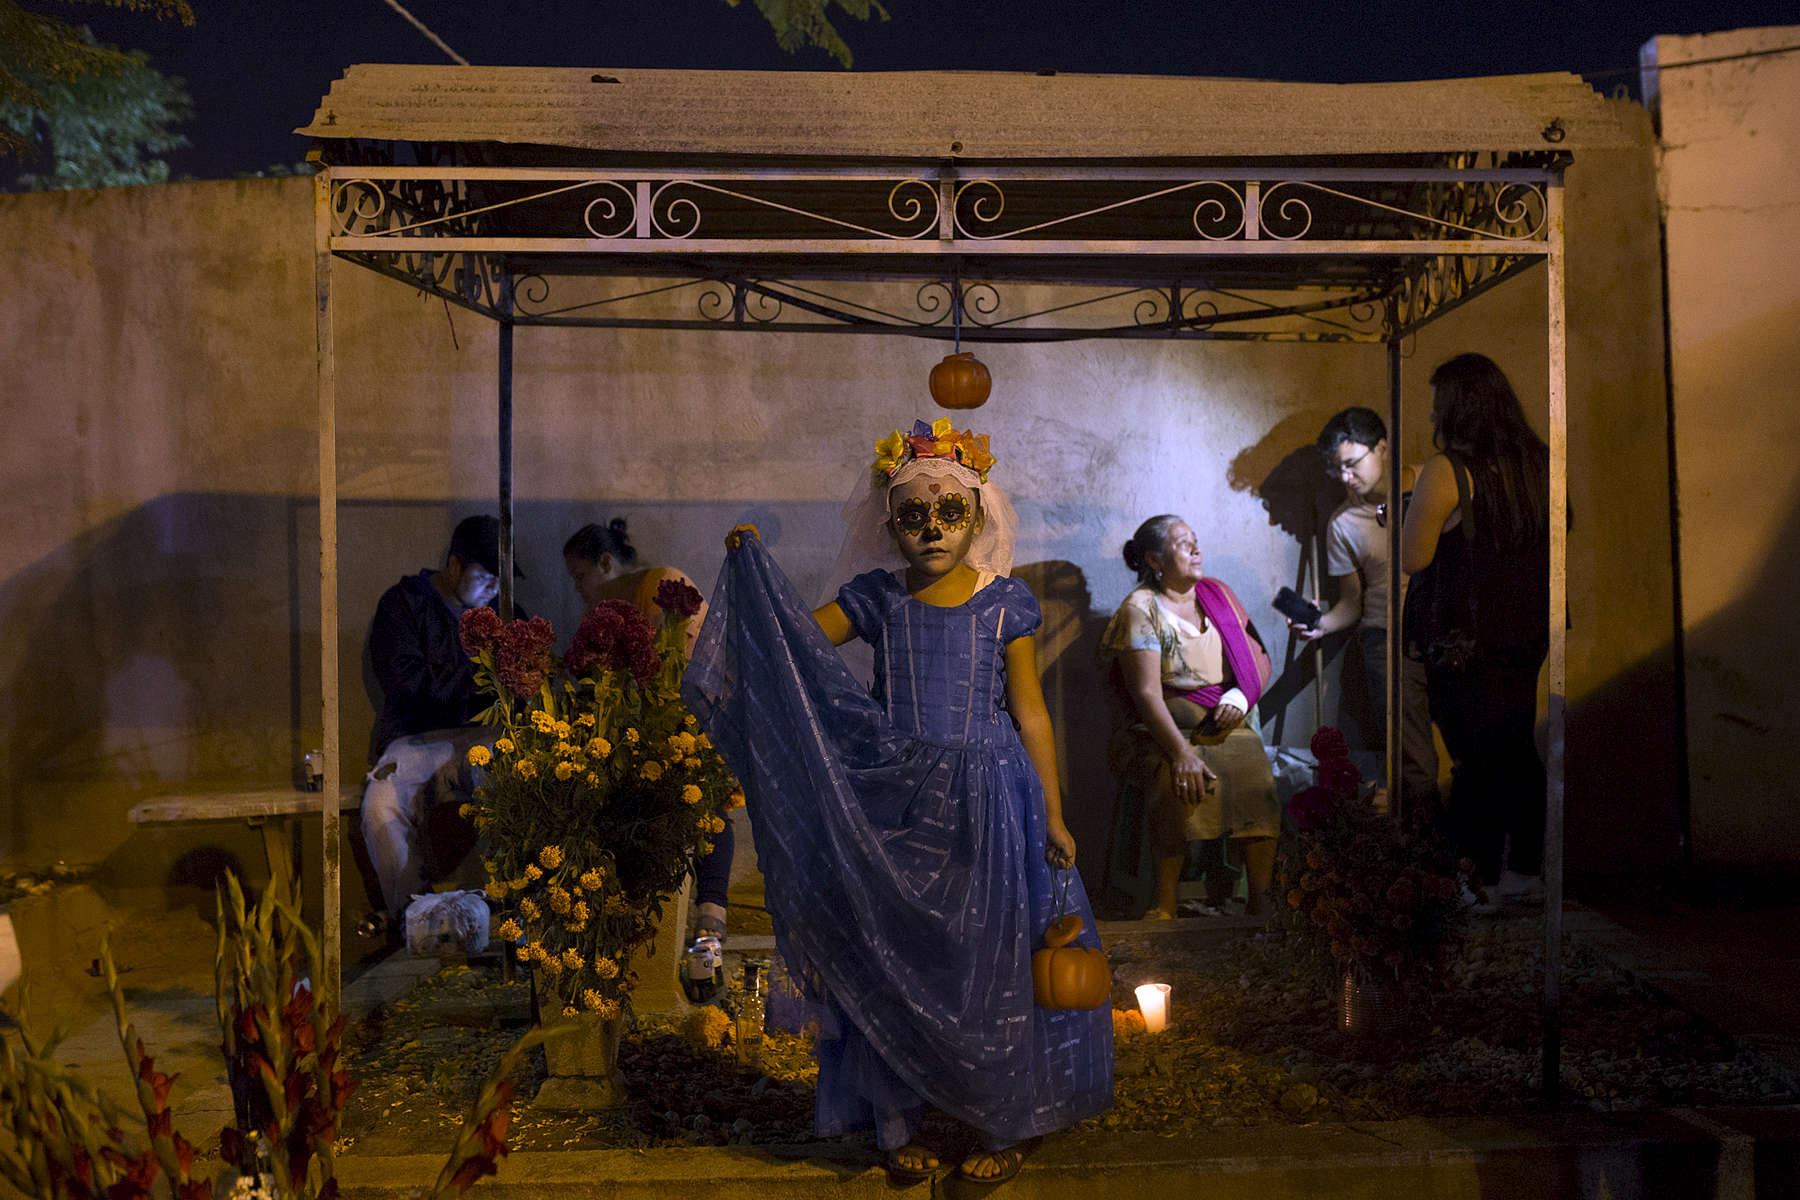 Margarita Jimenez stands on a grave in Panteon Viejo Xoxocotlán during Day of the Dead.